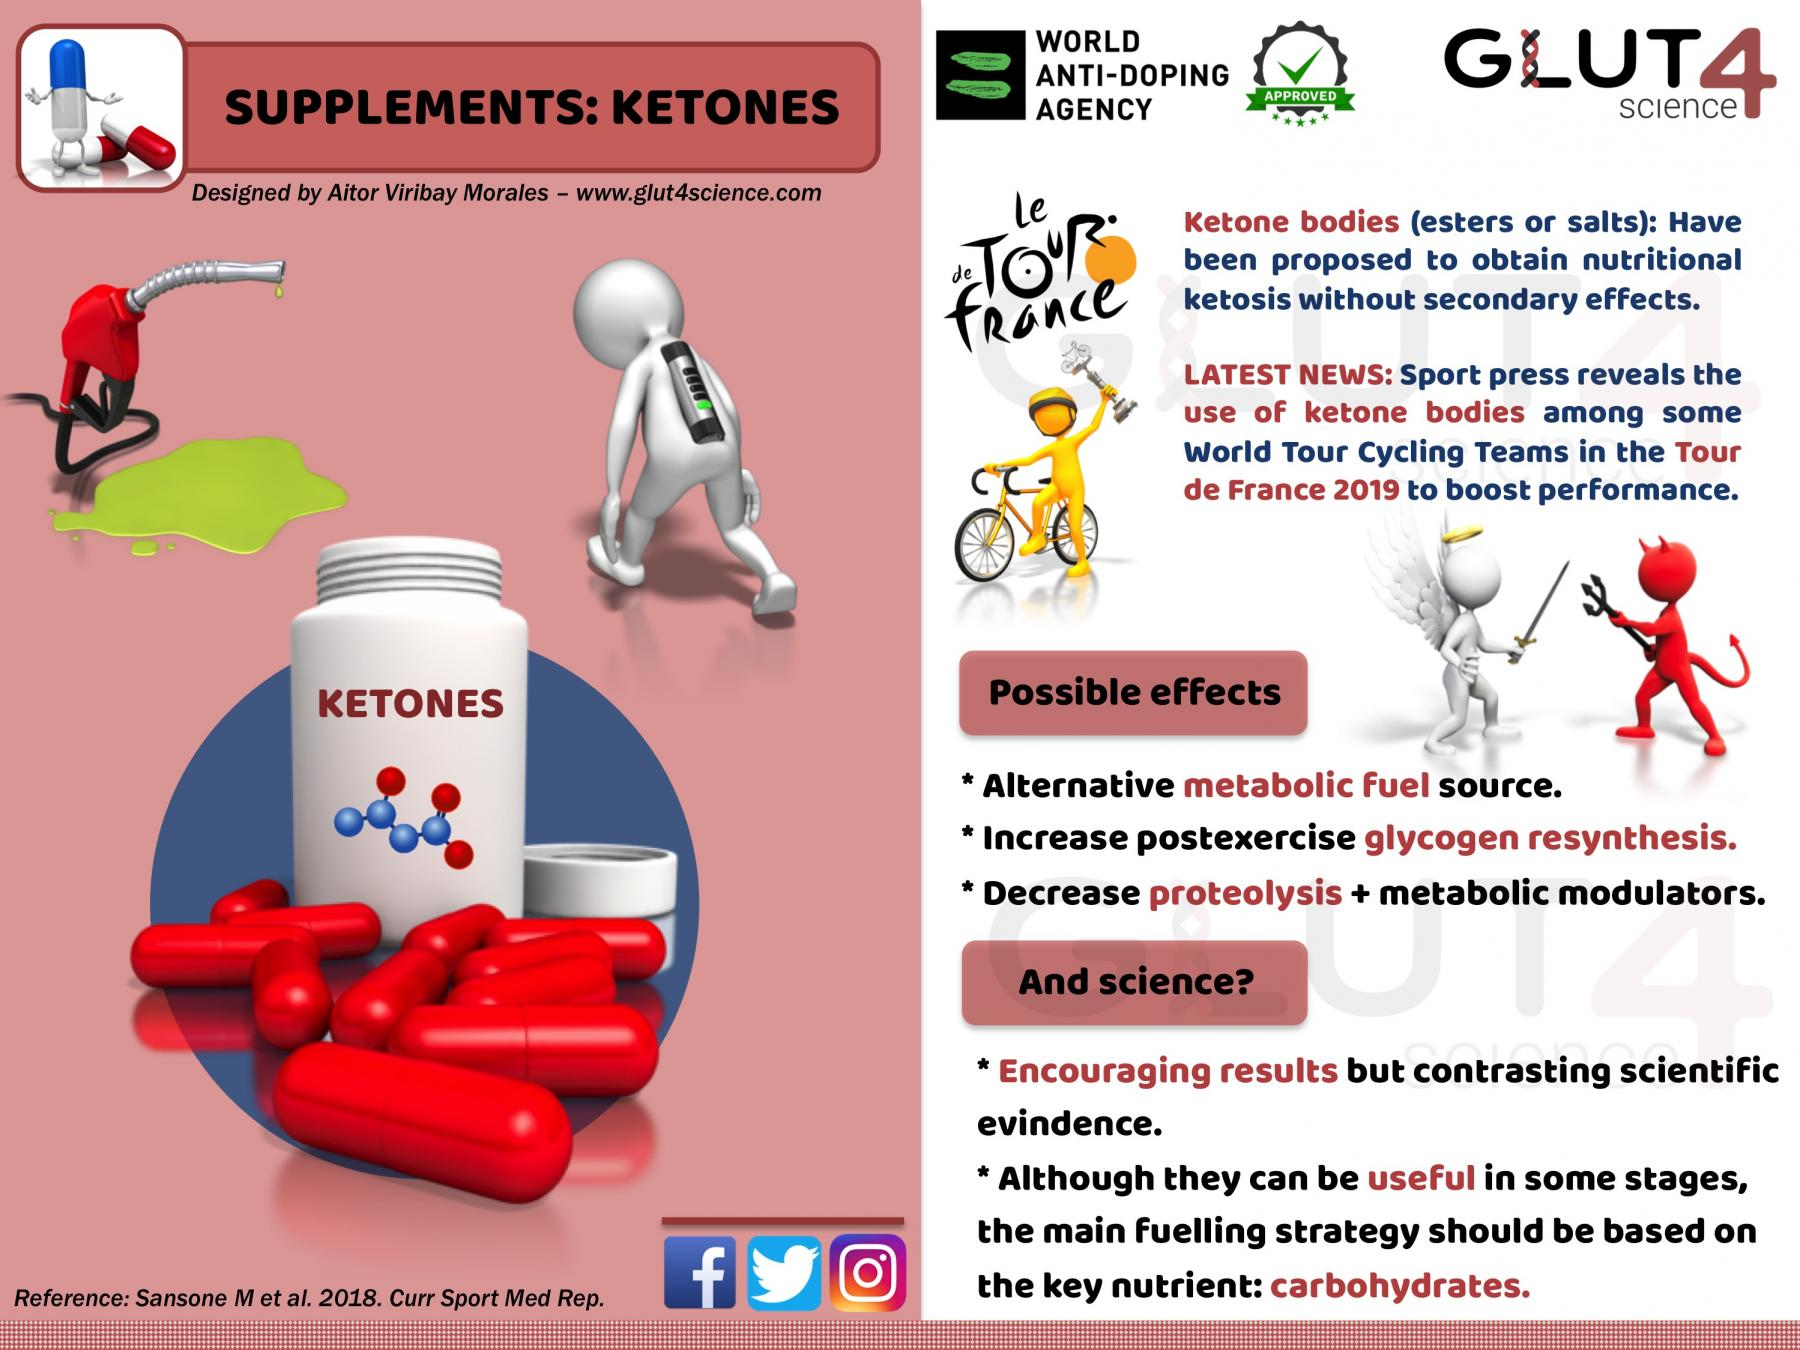 Ketone bodies: A new supplement?